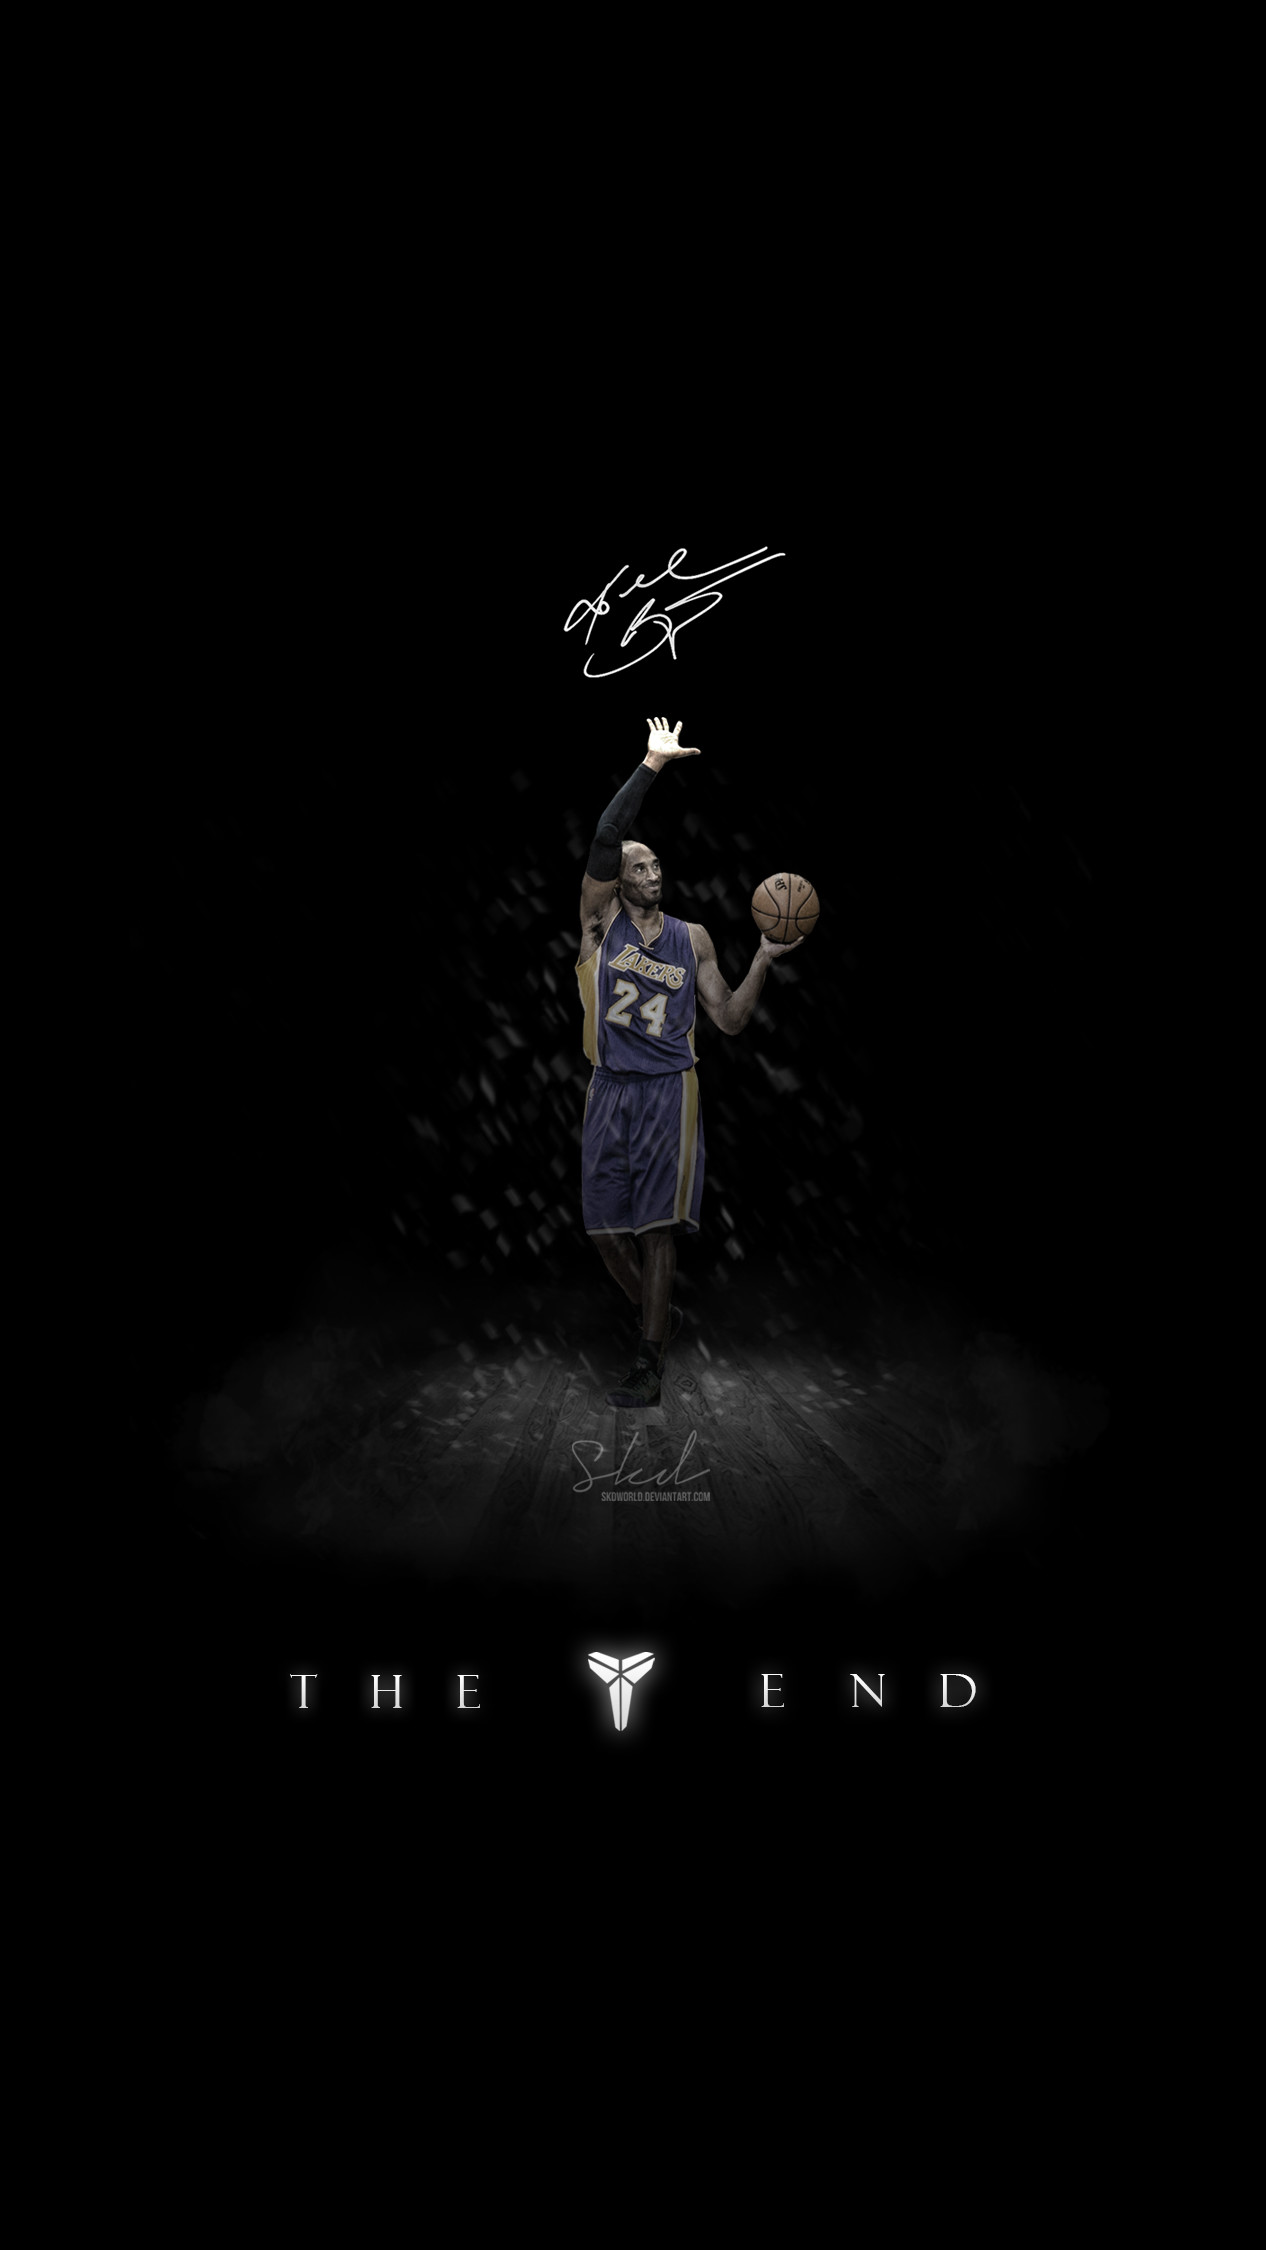 … Kobe: The End of Mamba Show Wallpaper for iPhone by SkdWorld